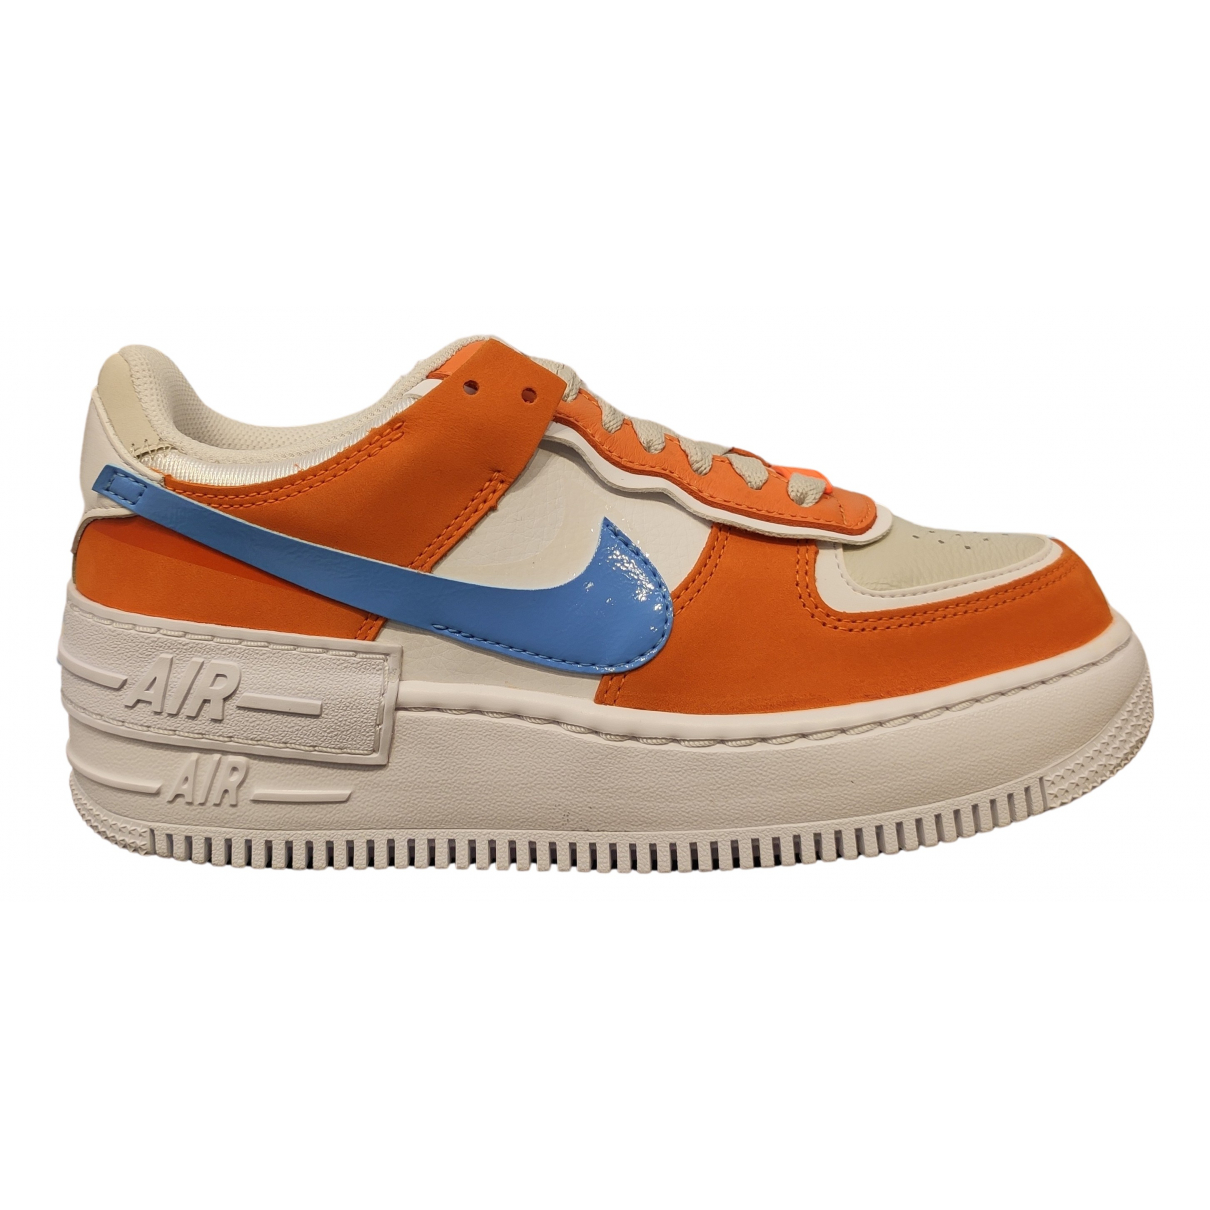 Nike Air Force 1 Orange Suede Trainers for Women 38 EU